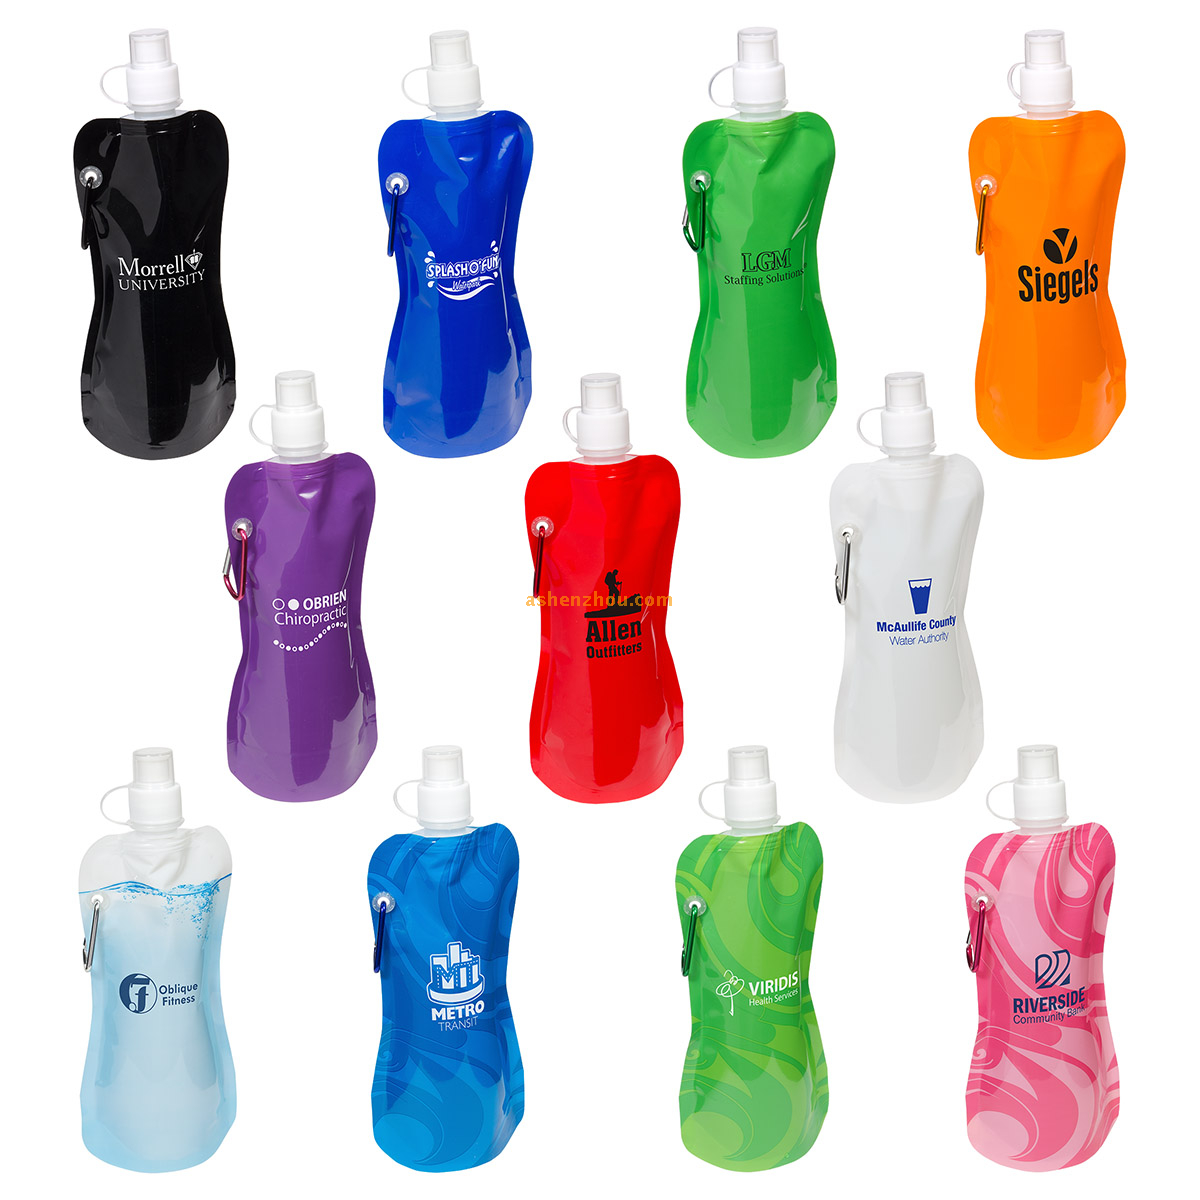 Sport foldable plastic drinking water bottle, easy carry collapsible water bottle, plastic bottle bag